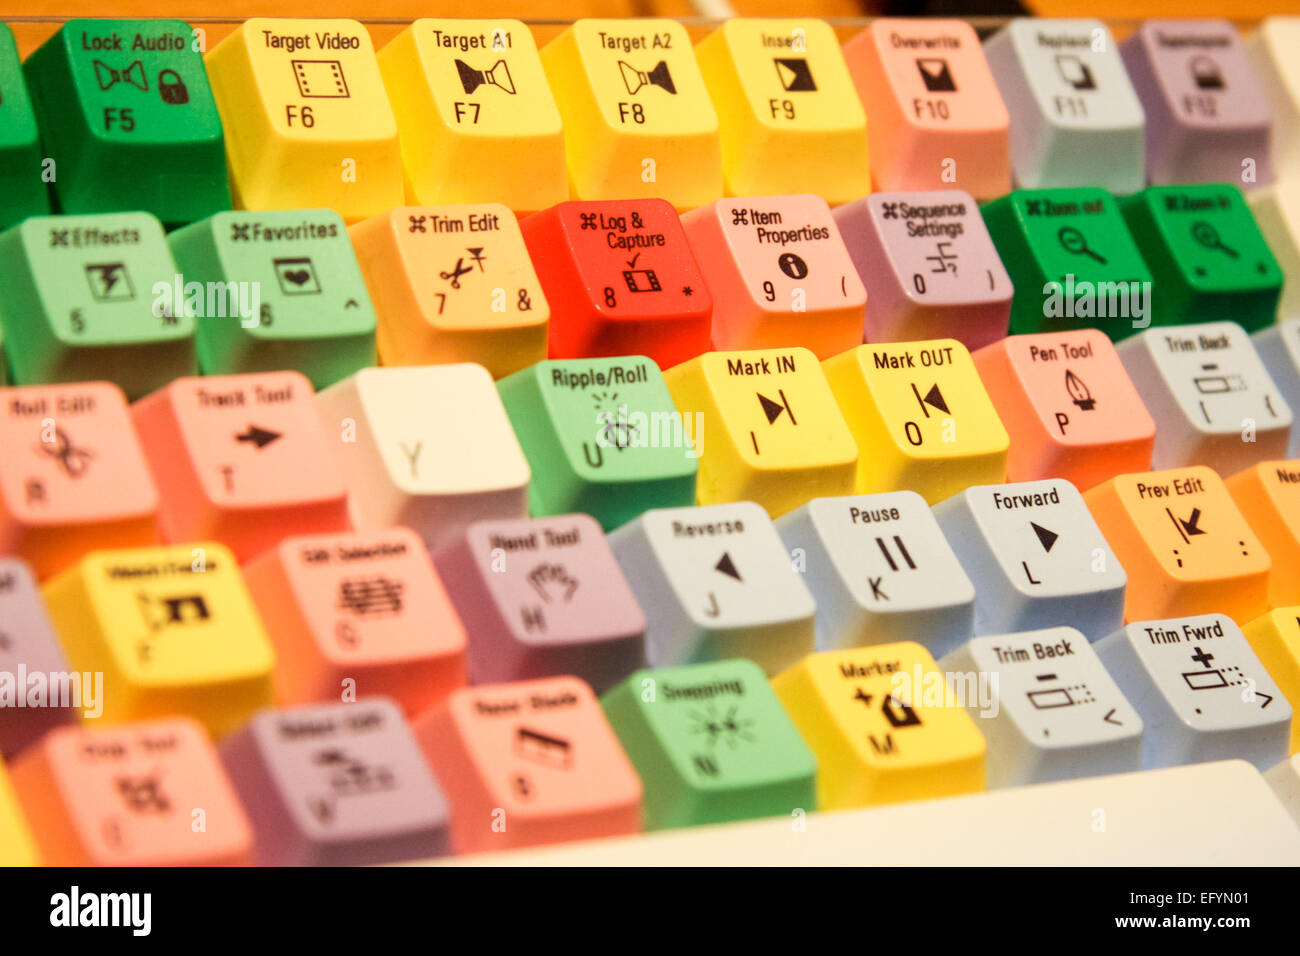 Keys on a video editing keyboard - Stock Image